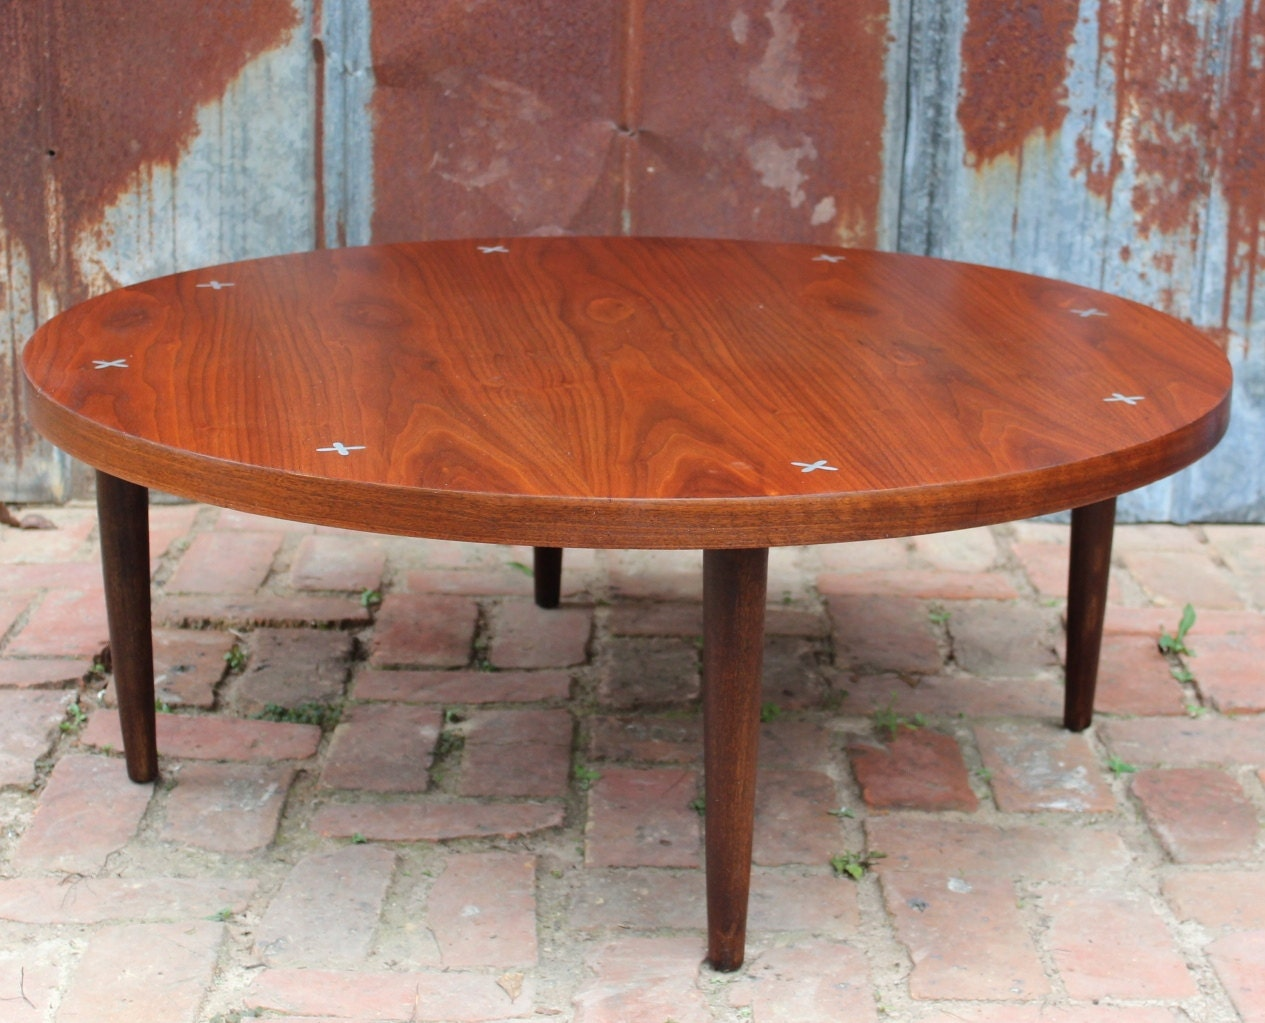 Vintage American Of Martinsville Round Walnut Coffee Table Mid